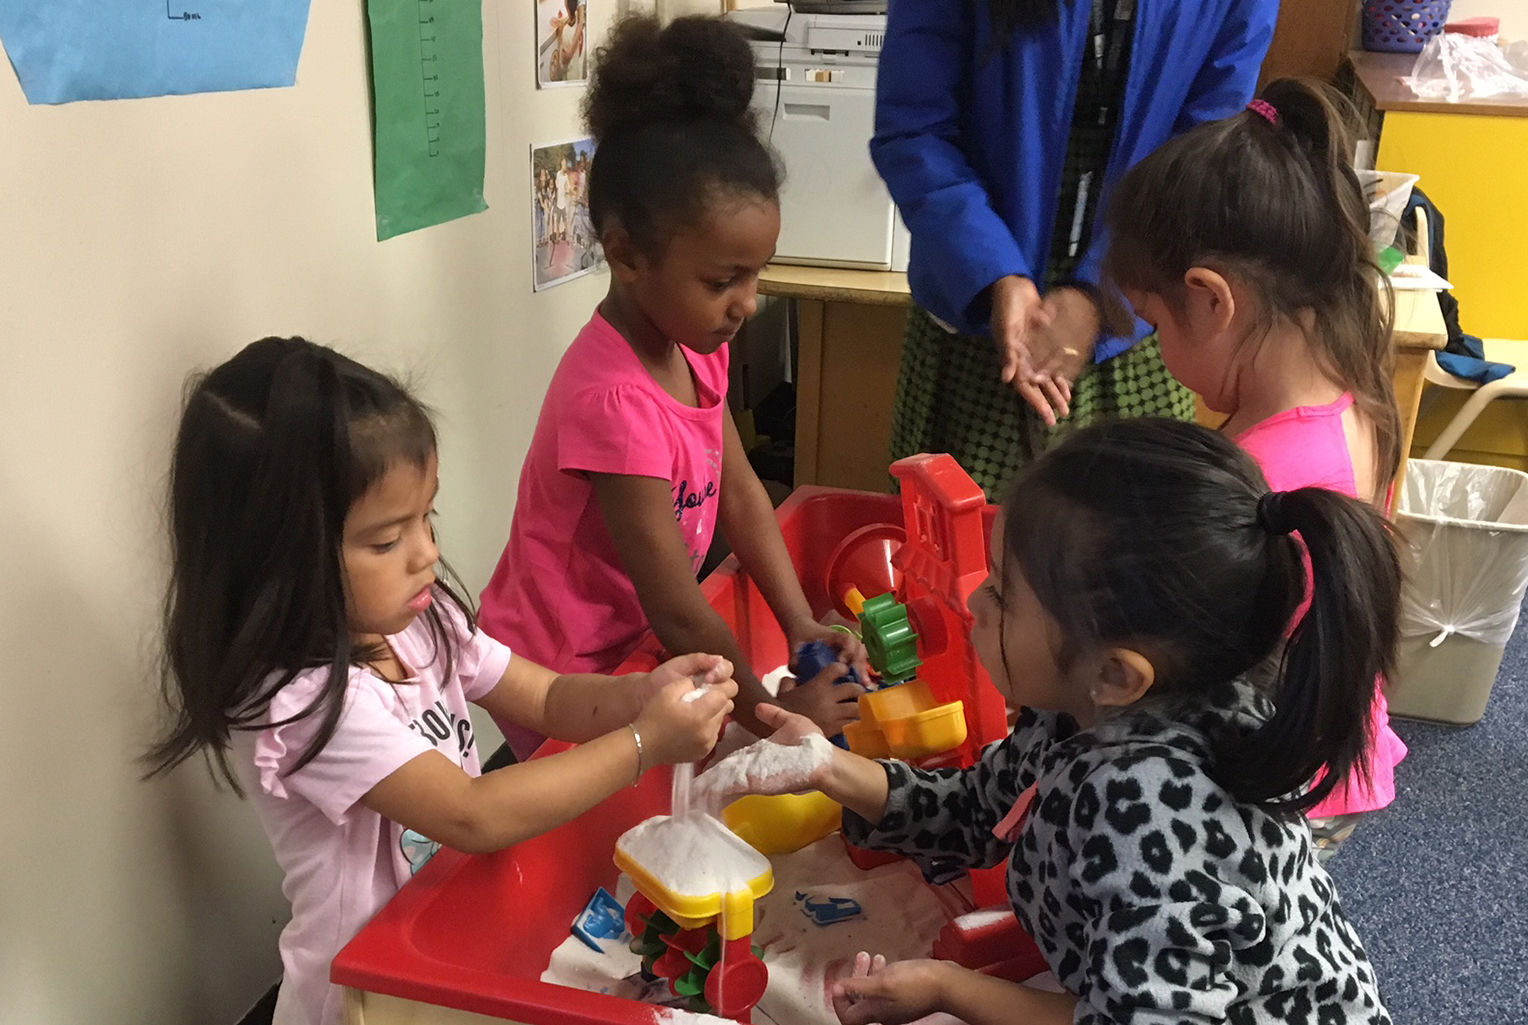 Preschool children playing and learning